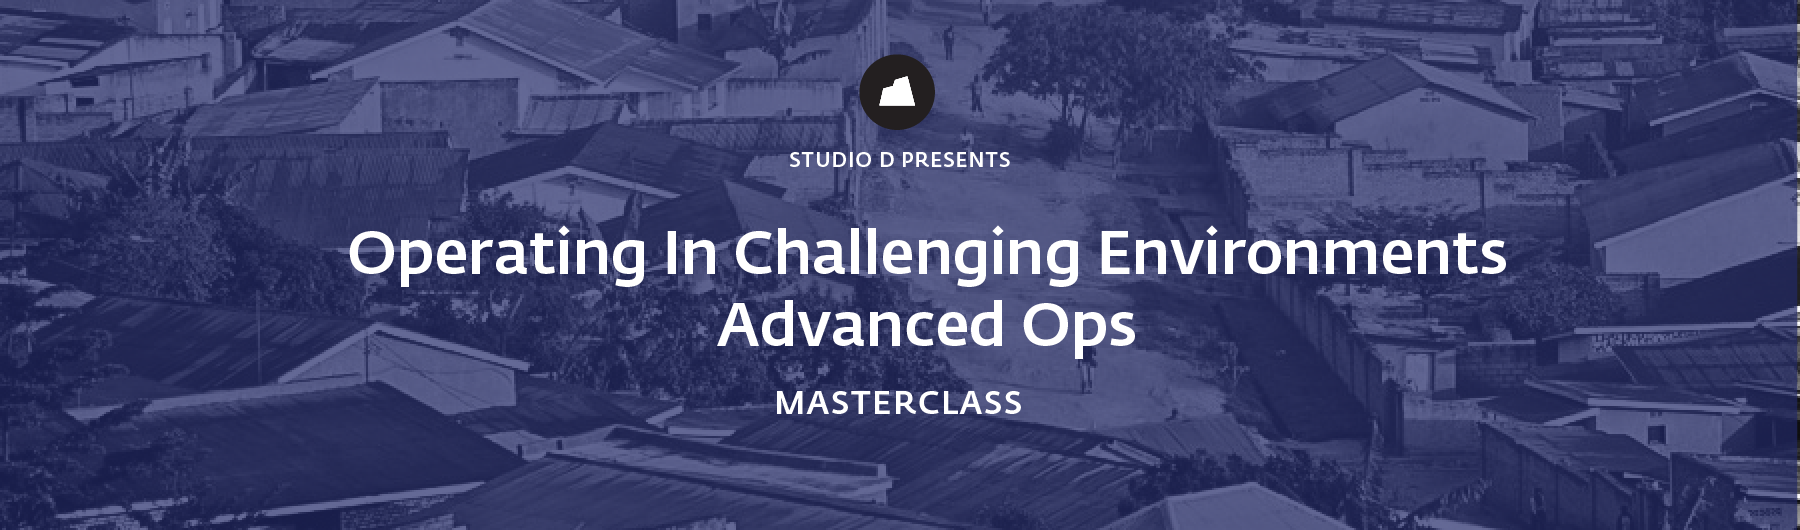 Operating in Challenging Environments, Advanced Ops Masterclass, 24 April 2020, Singapore